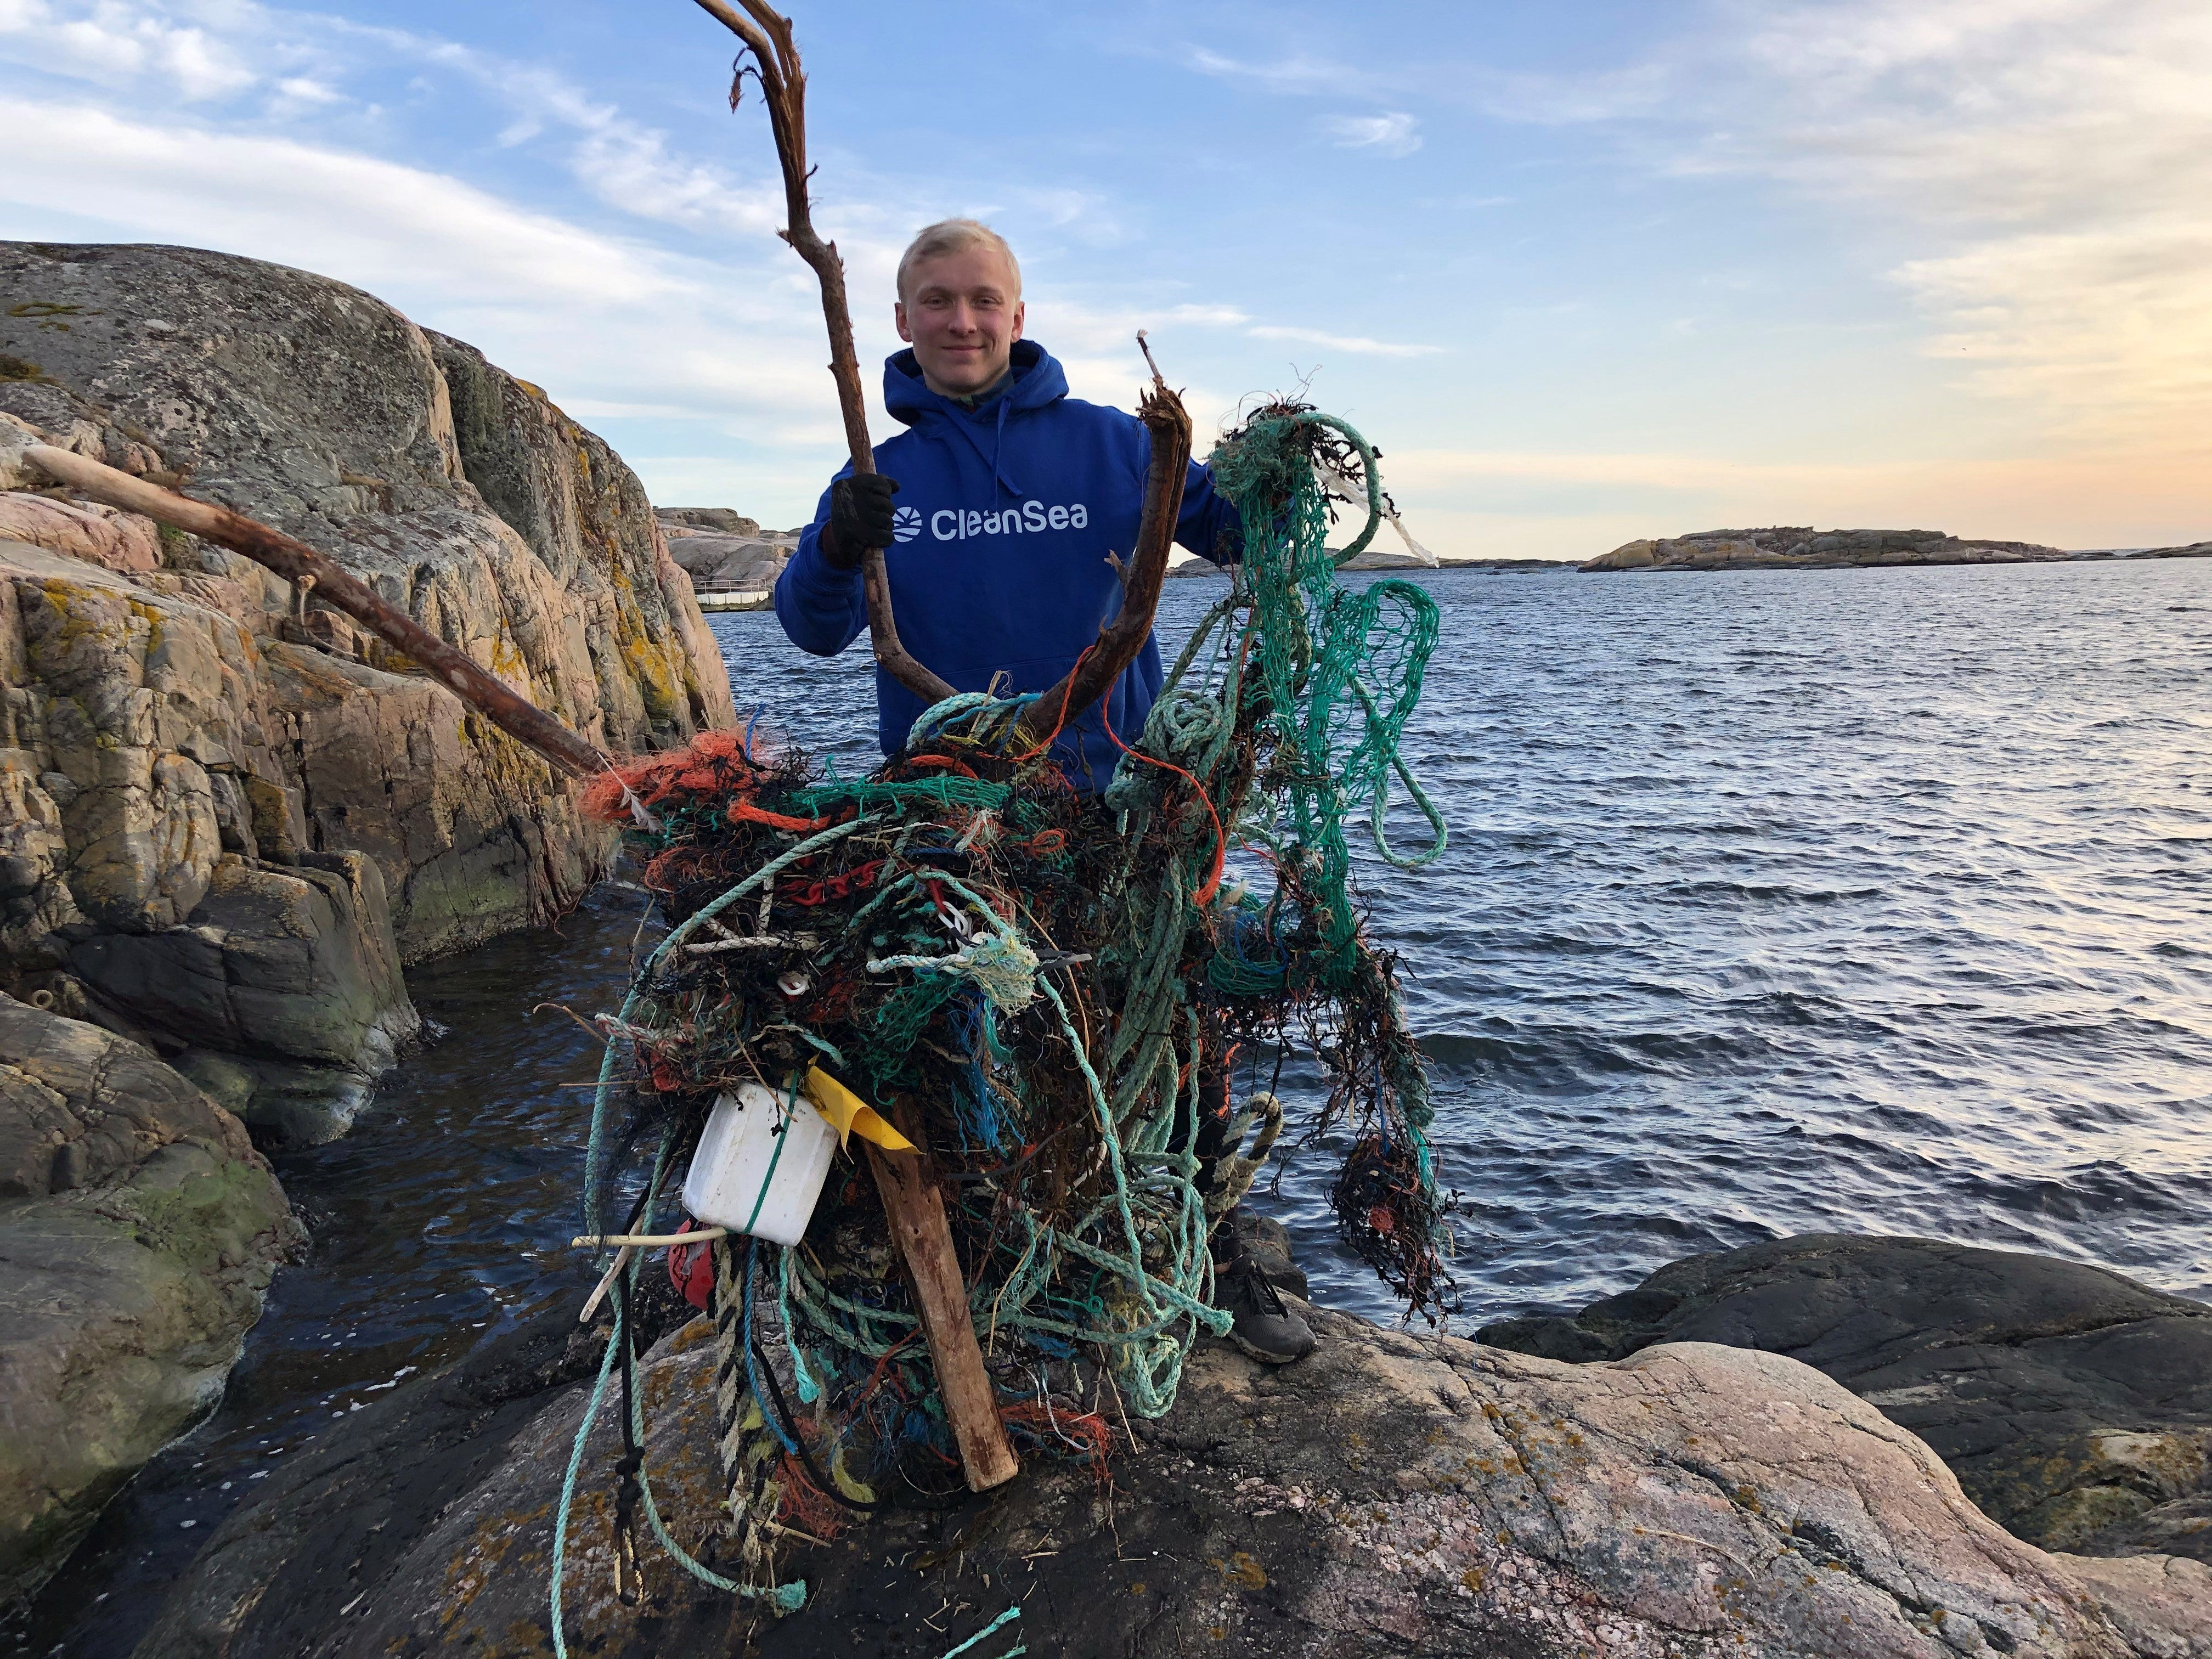 CleanSea removing fishing gear from the ocean, Bohuslän